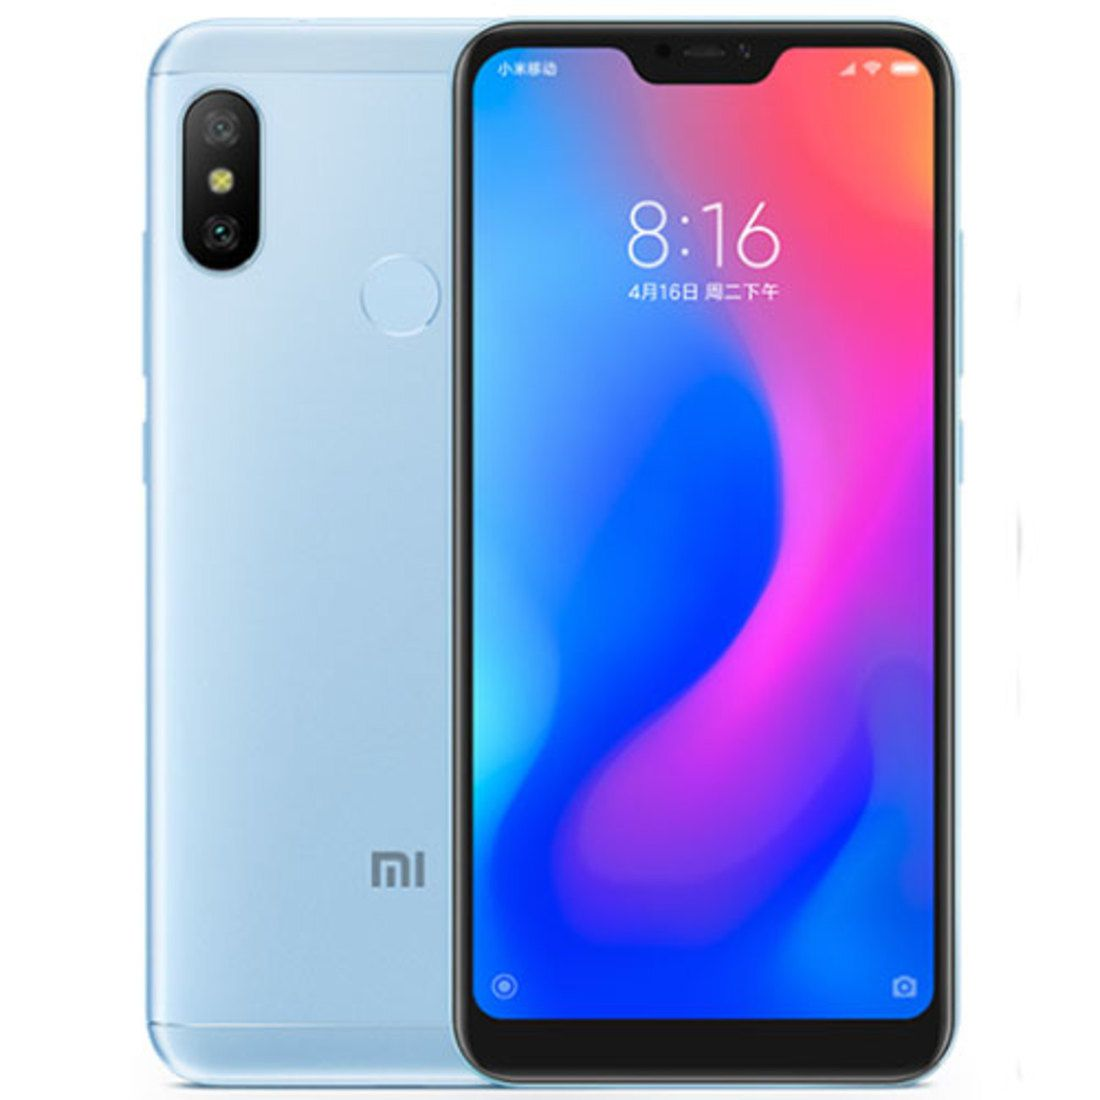 Smartphone Xiaomi Redmi Note 6 Pro 3GB Ram Tela 6.26 32GB Camera dupla 12+5MP - Azul